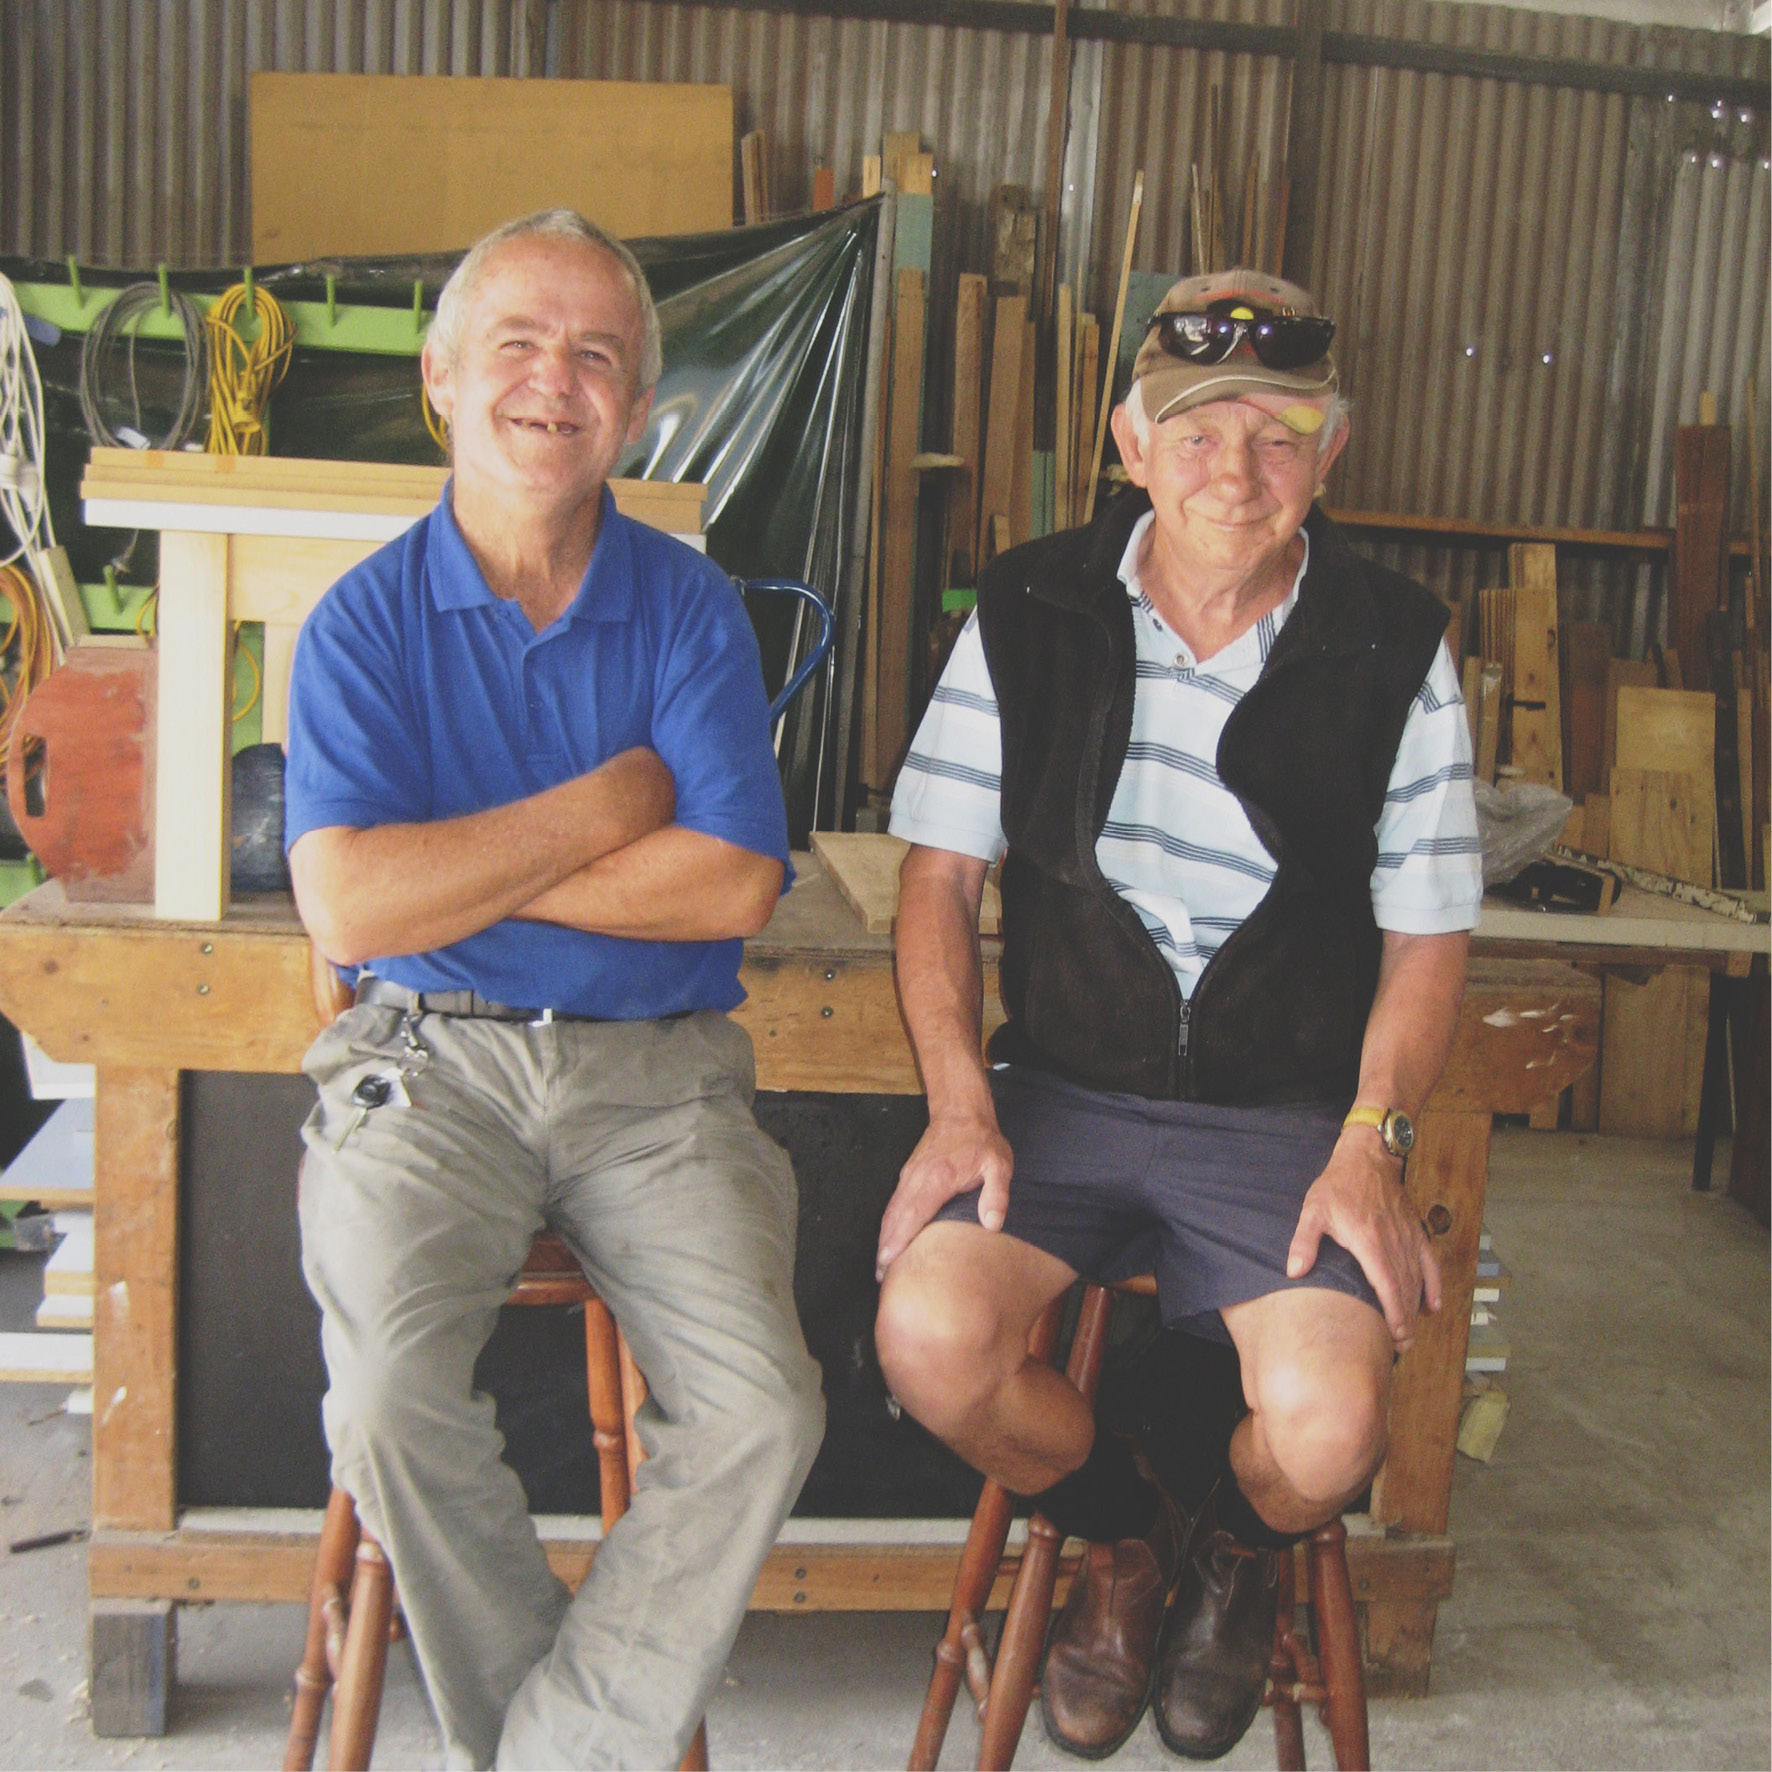 Two older men setting on stools inside a workshop/garage.